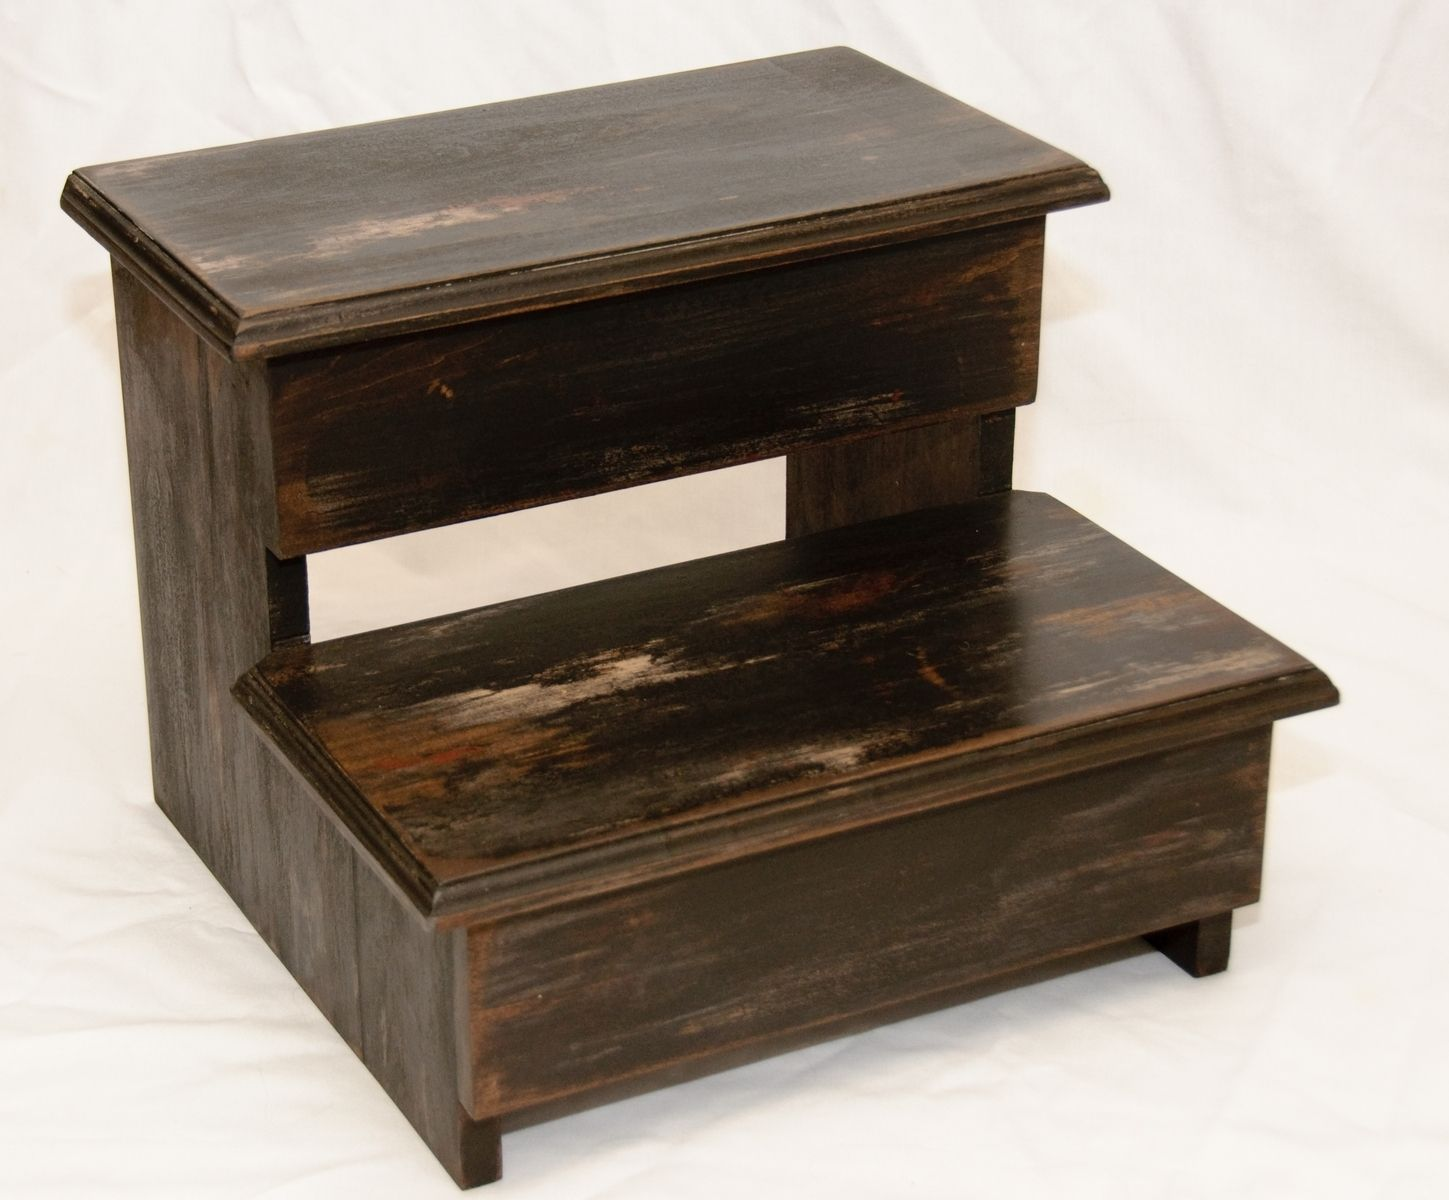 Buy A Custom Large Step Stool Made To Order From Buchanan